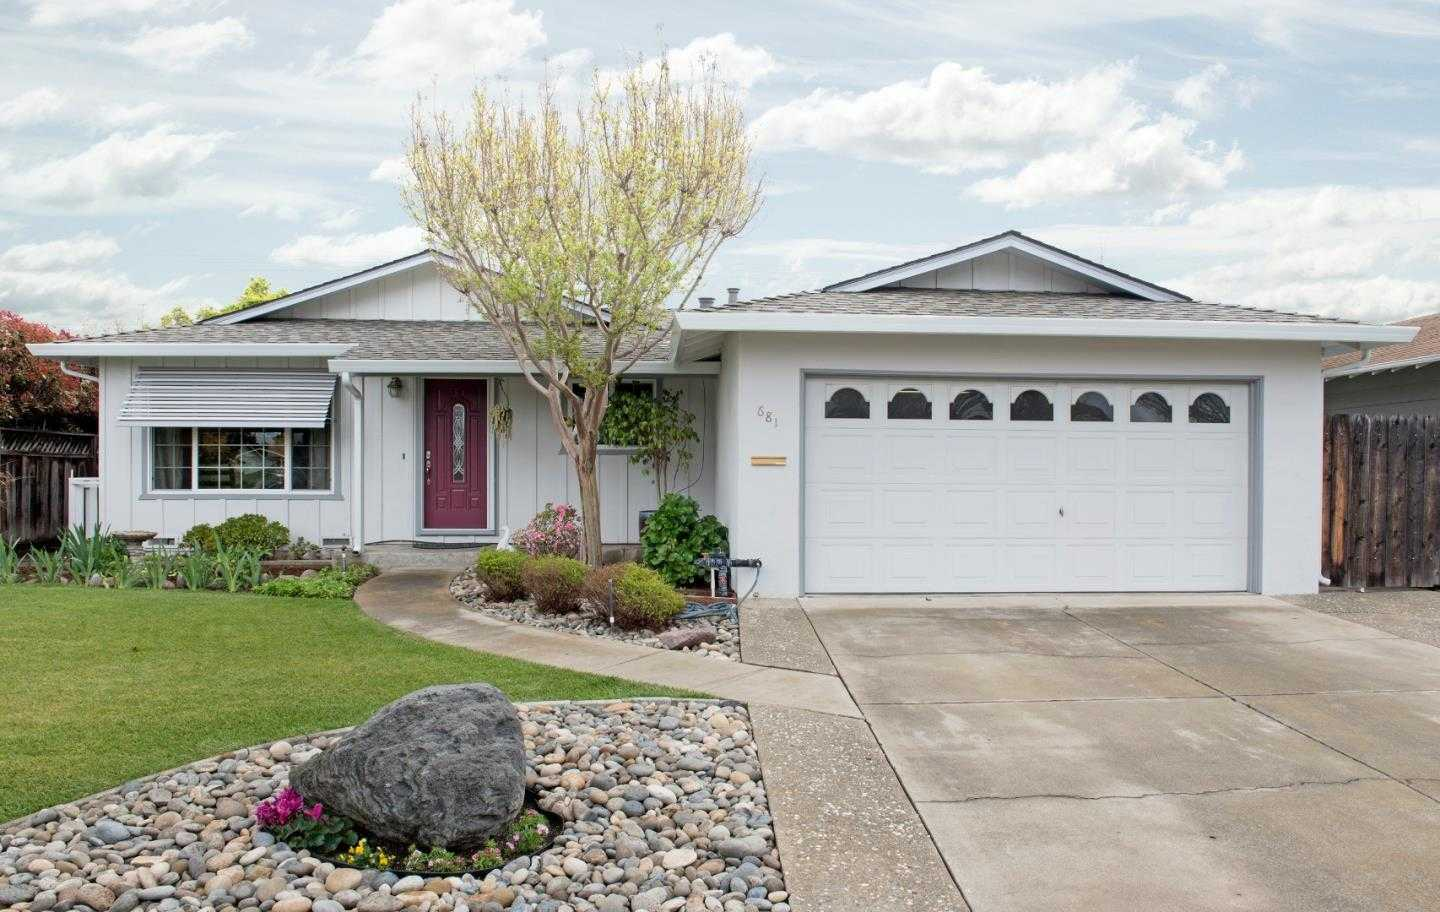 $1,475,000 - 3Br/2Ba -  for Sale in Santa Clara